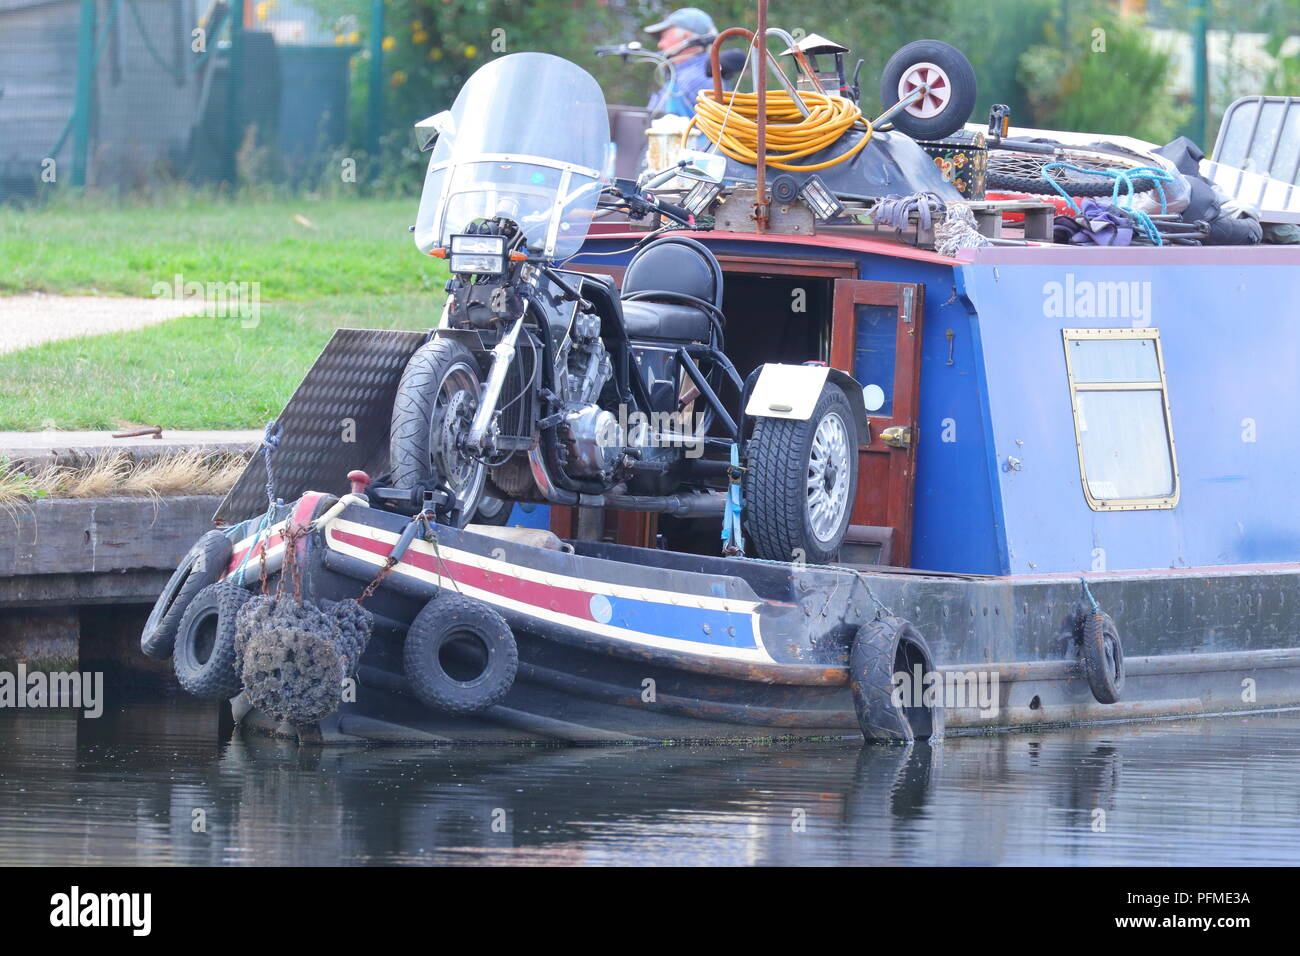 A Narrowboat with additional transport on board to be able to be more mobile. - Stock Image